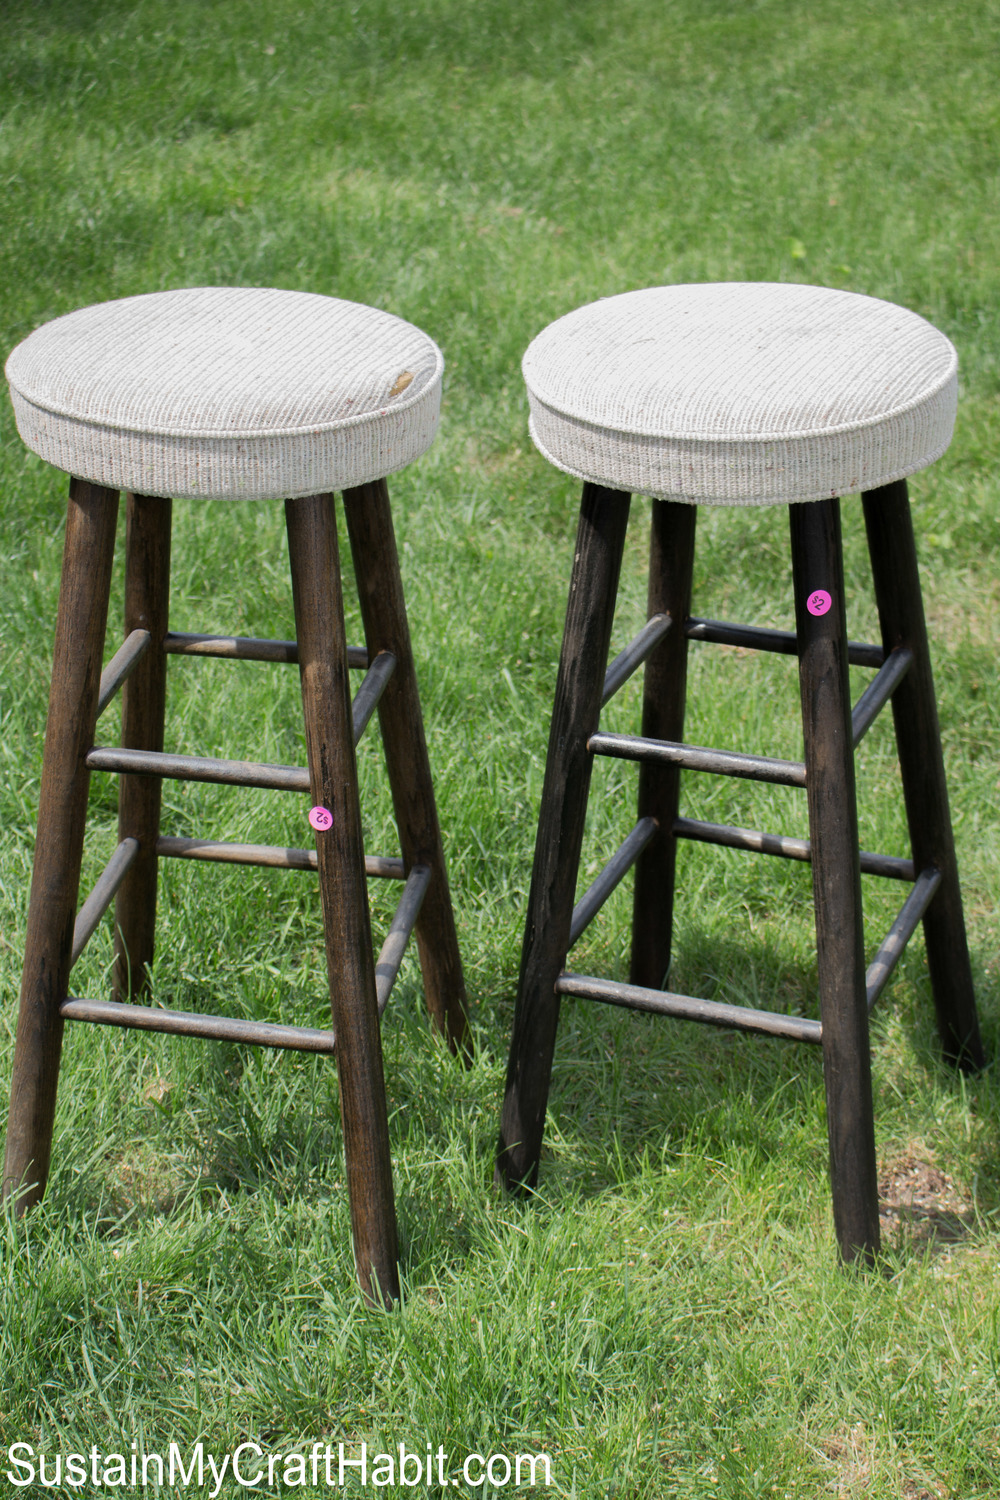 Two bar stools with dark brown legs and light fabric upholstery on the grass.